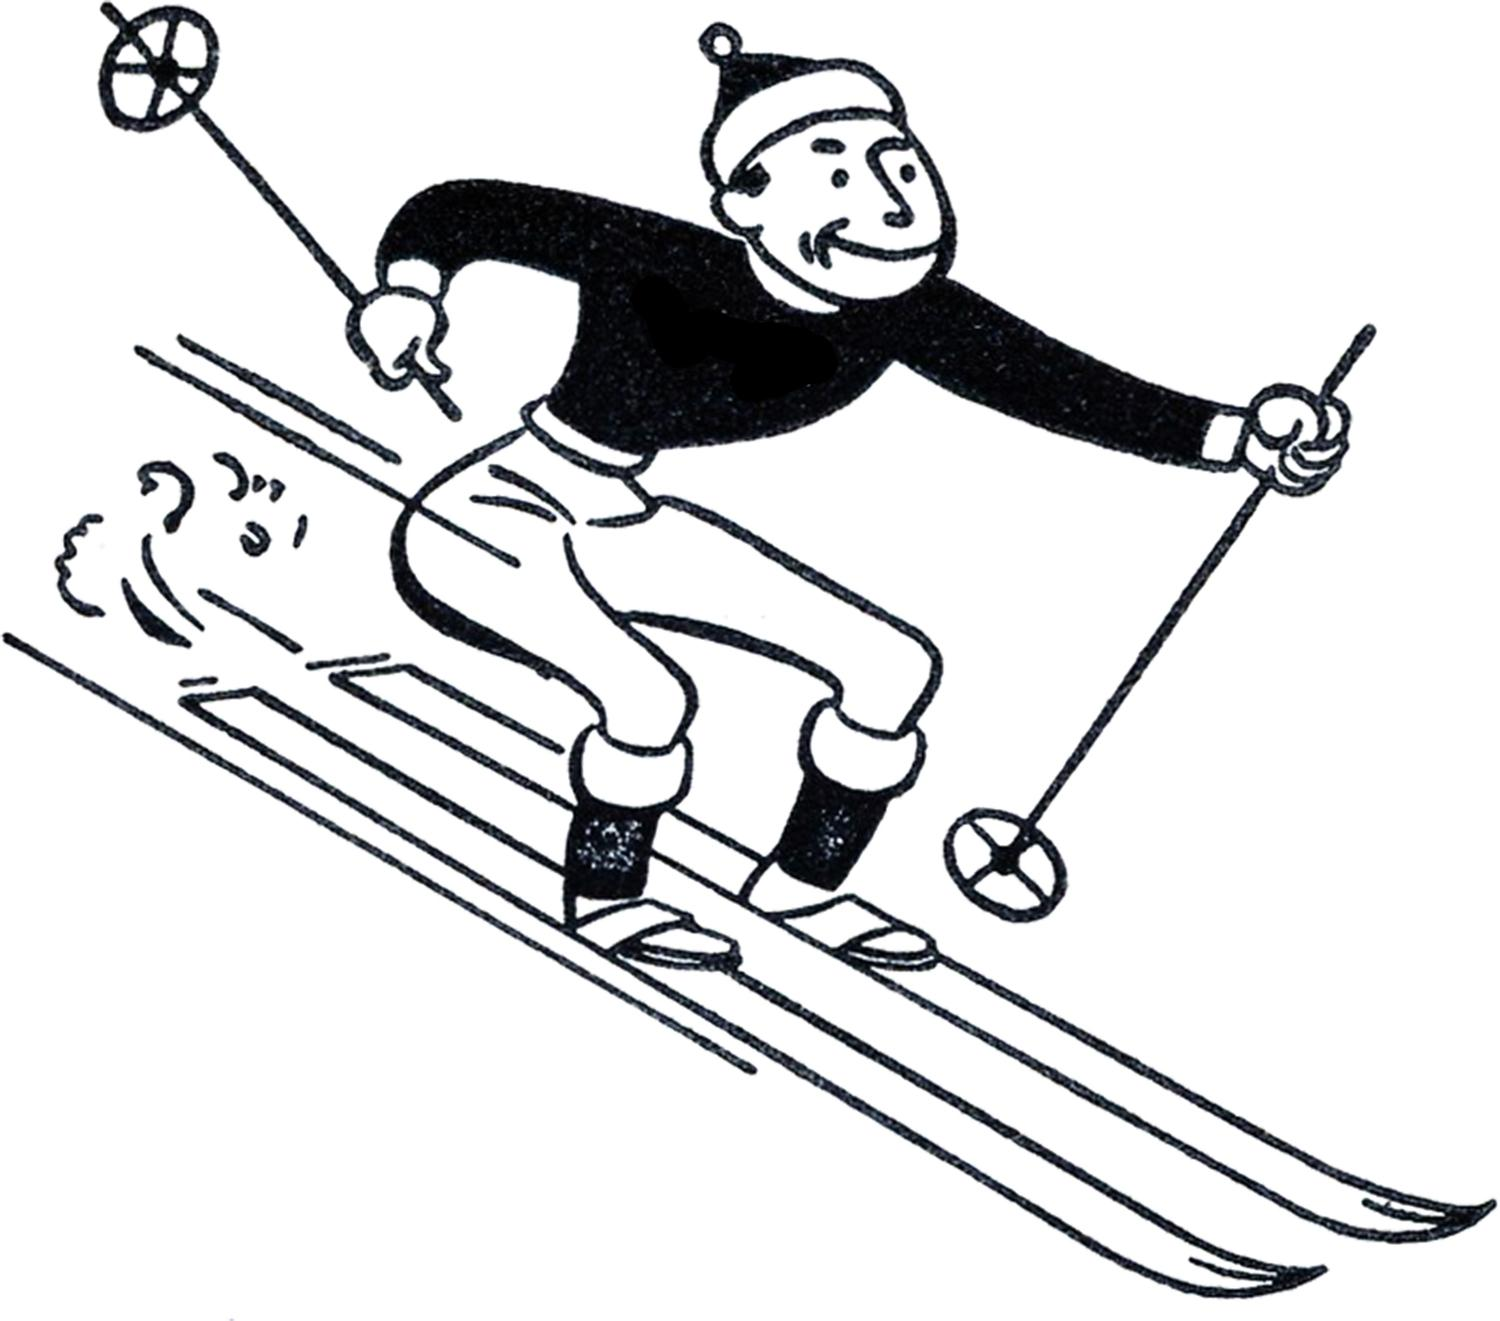 1500x1321 Best Hd Skiing Clip Art Image Free Vector Art, Images, Graphics